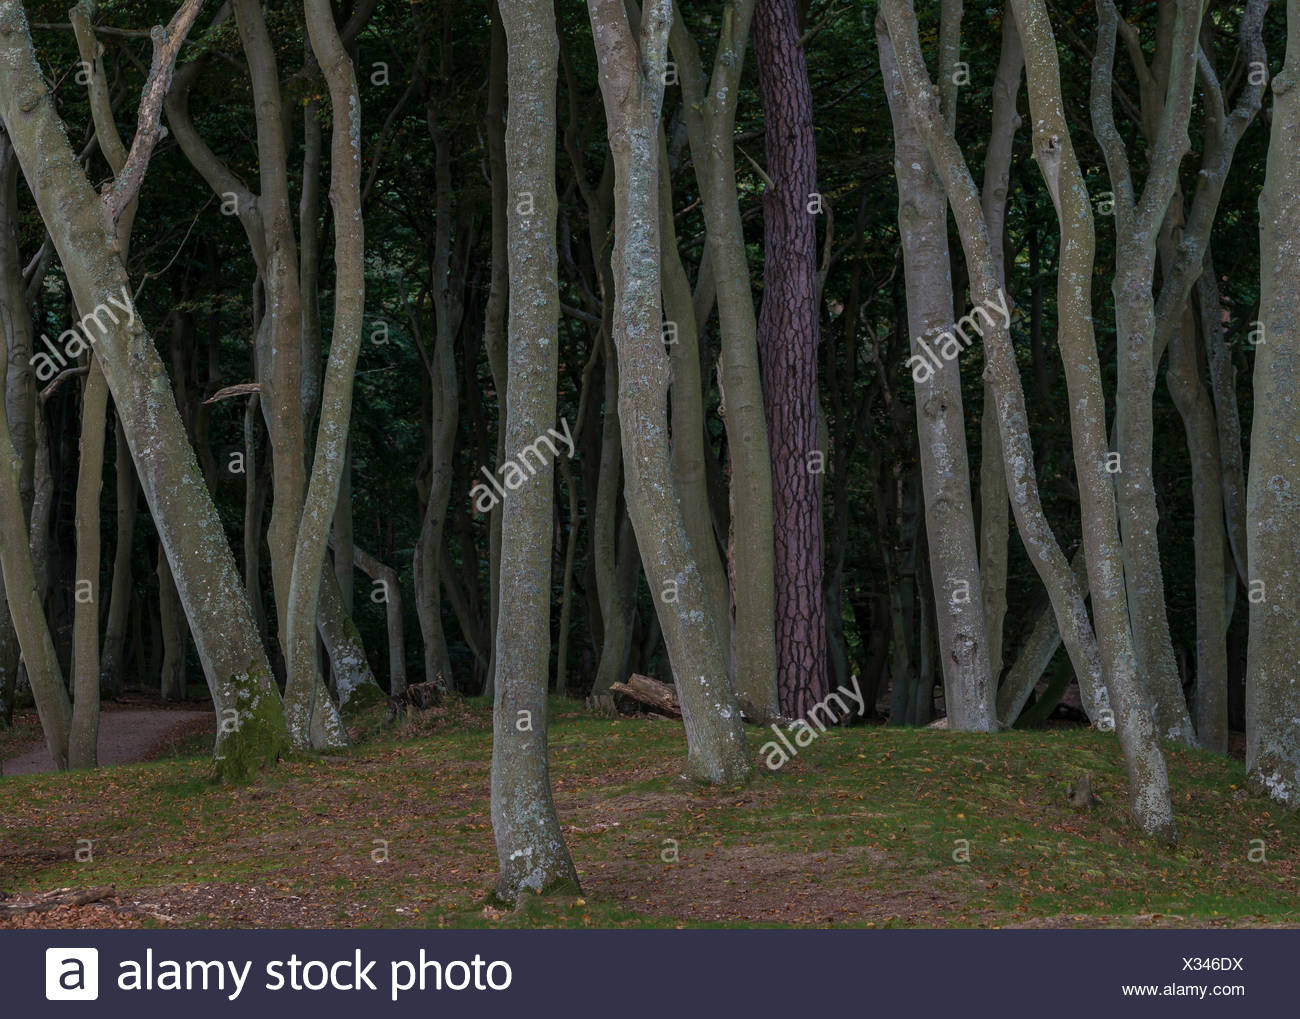 Beech forest with a solitary conifer, Darss Forest, mystical moody lighting, Prerow, Fischland-Darß-Zingst - Stock Image